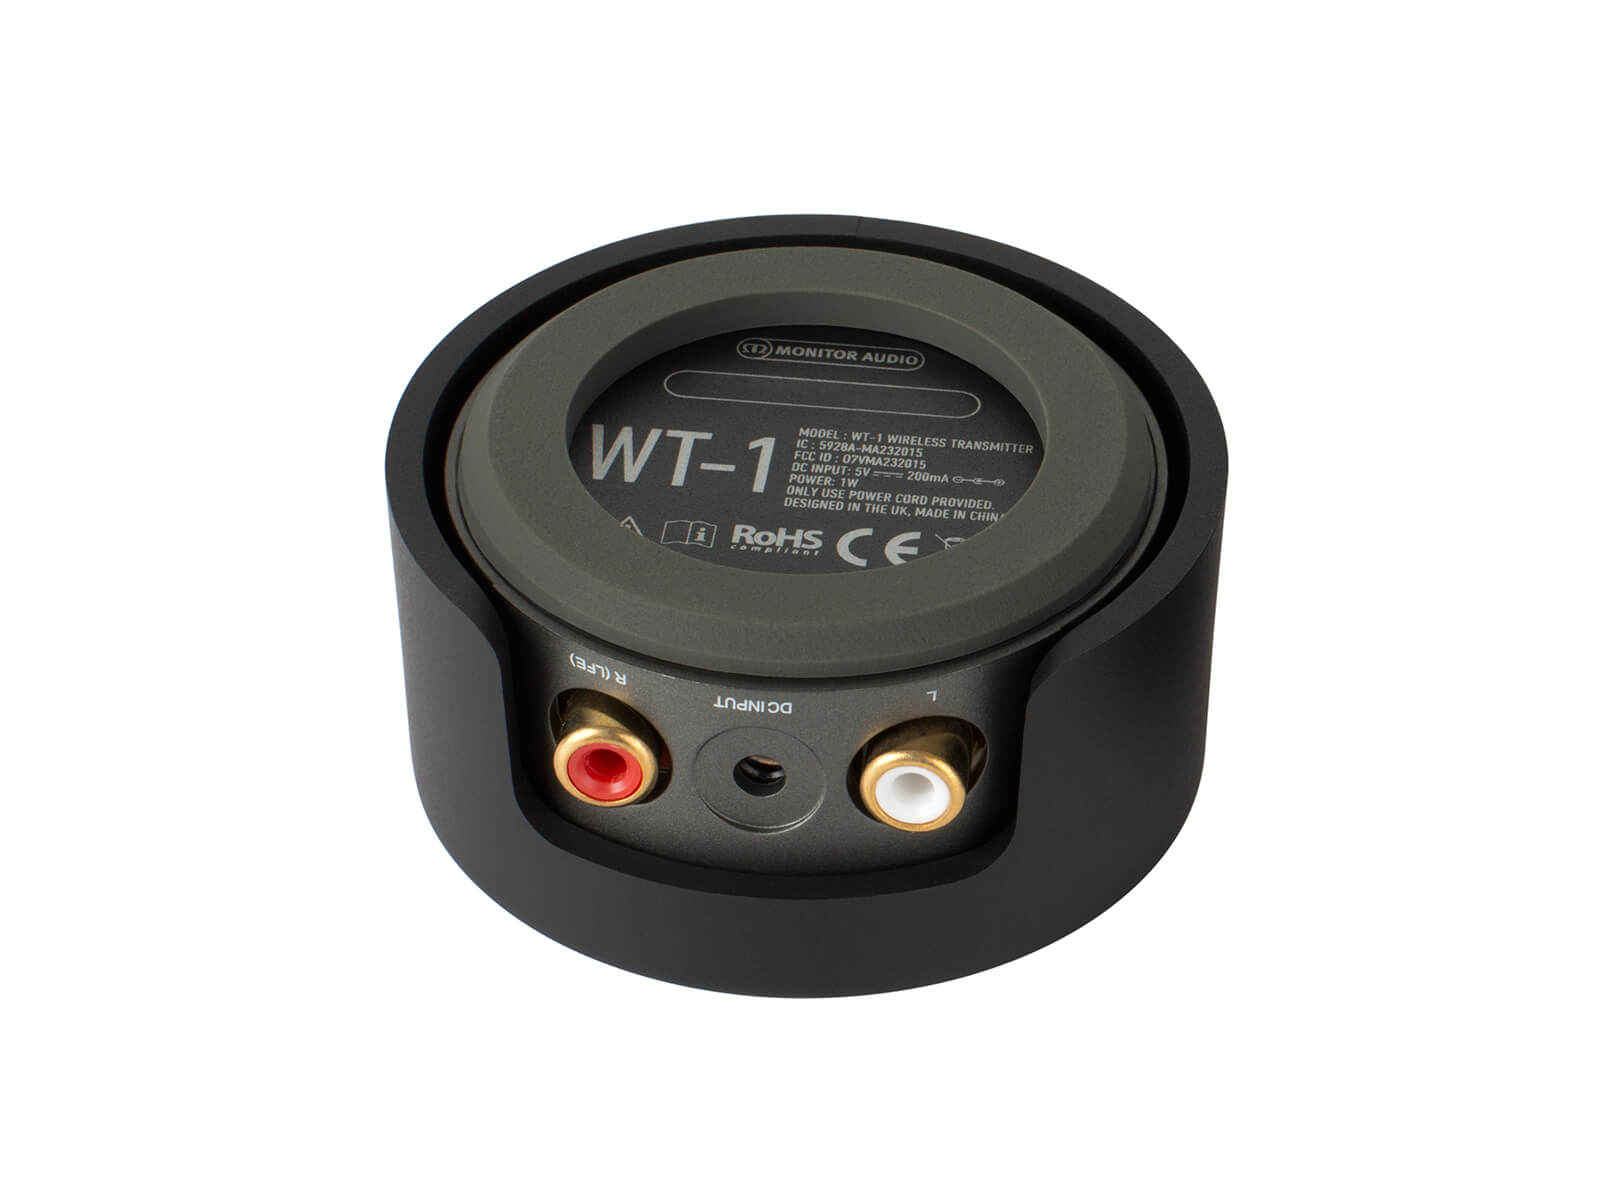 WT-1 ultra-compact wireless transmitter, bottom view.